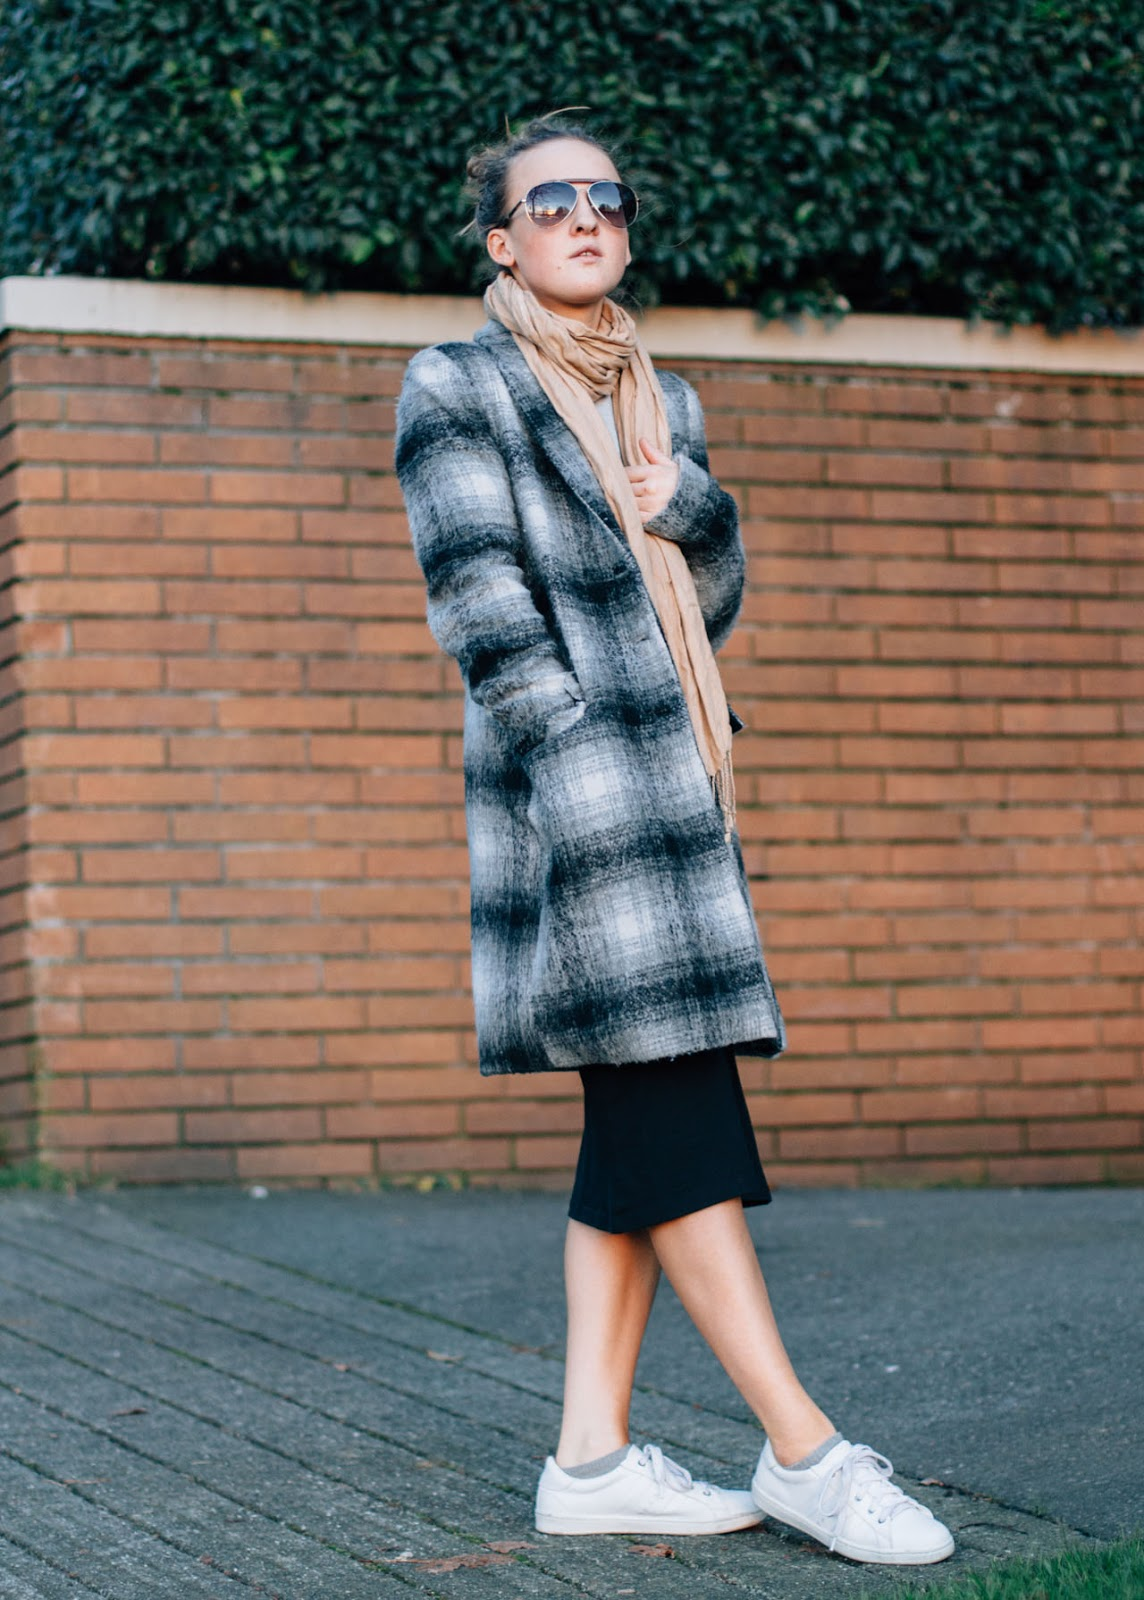 Winter Outfit - Vancouver fashion and style blogger - Plans for 2015